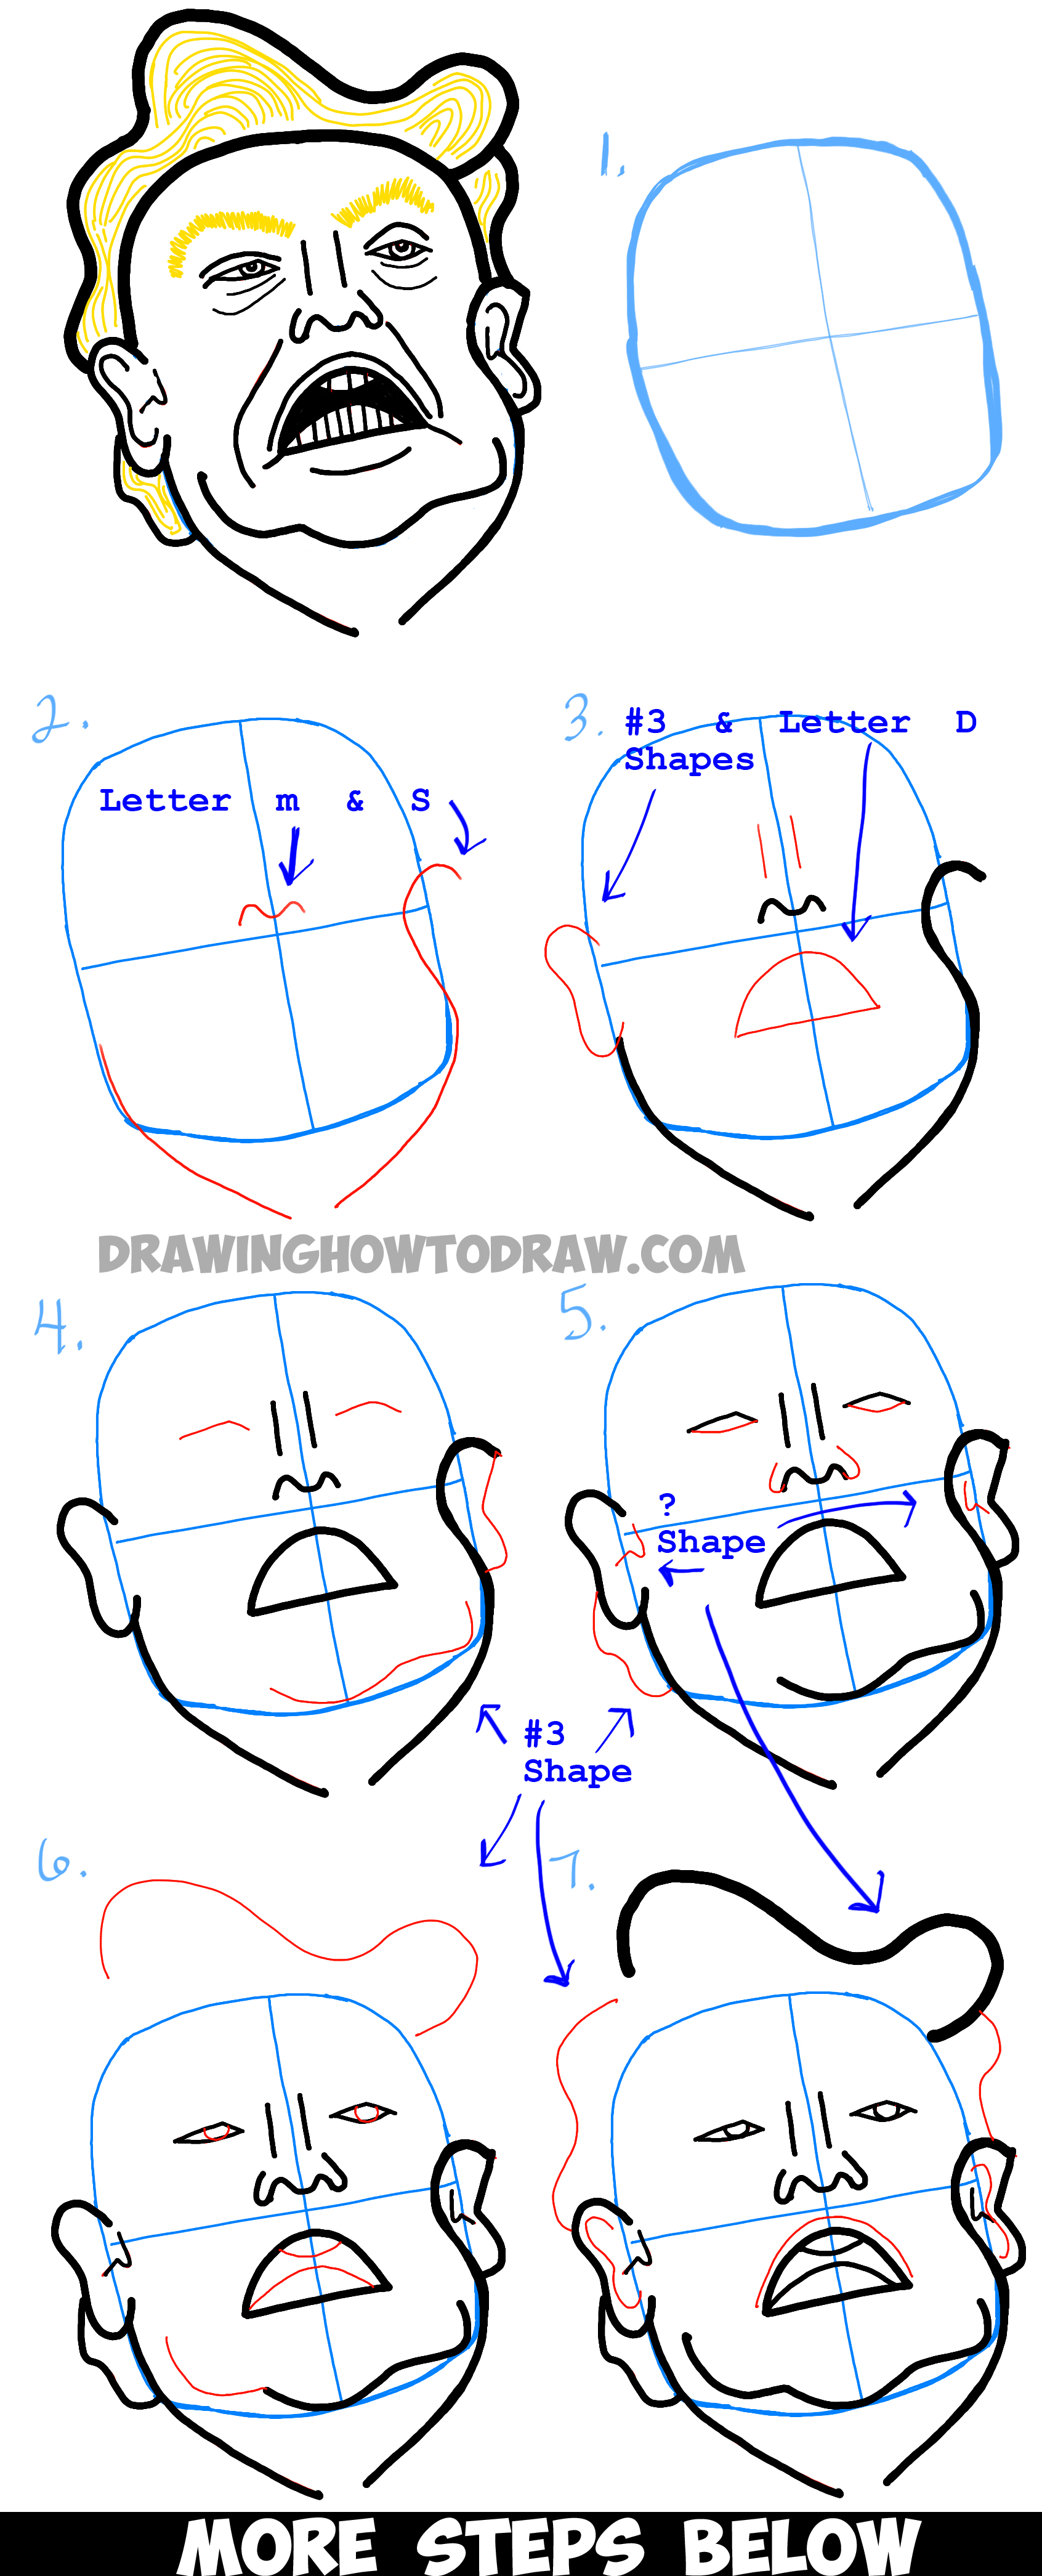 How to Draw Donald Trump Caricature or Illustration - Step by Step Drawing Tutorial